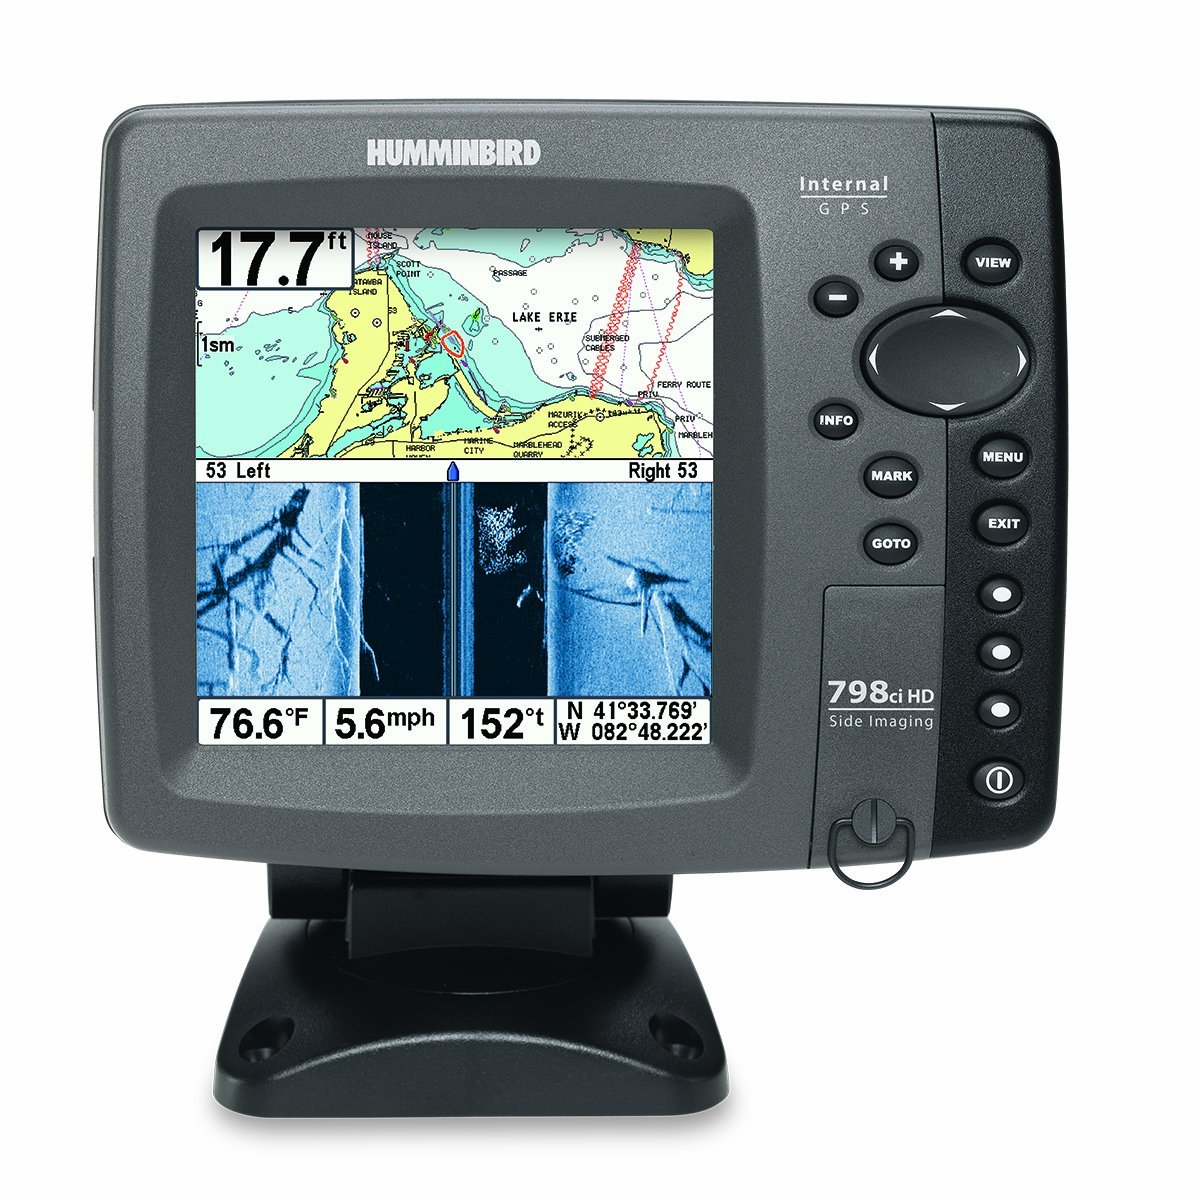 Humminbird 798ci hd si combo review fish finder guy for Humminbird portable fish finder